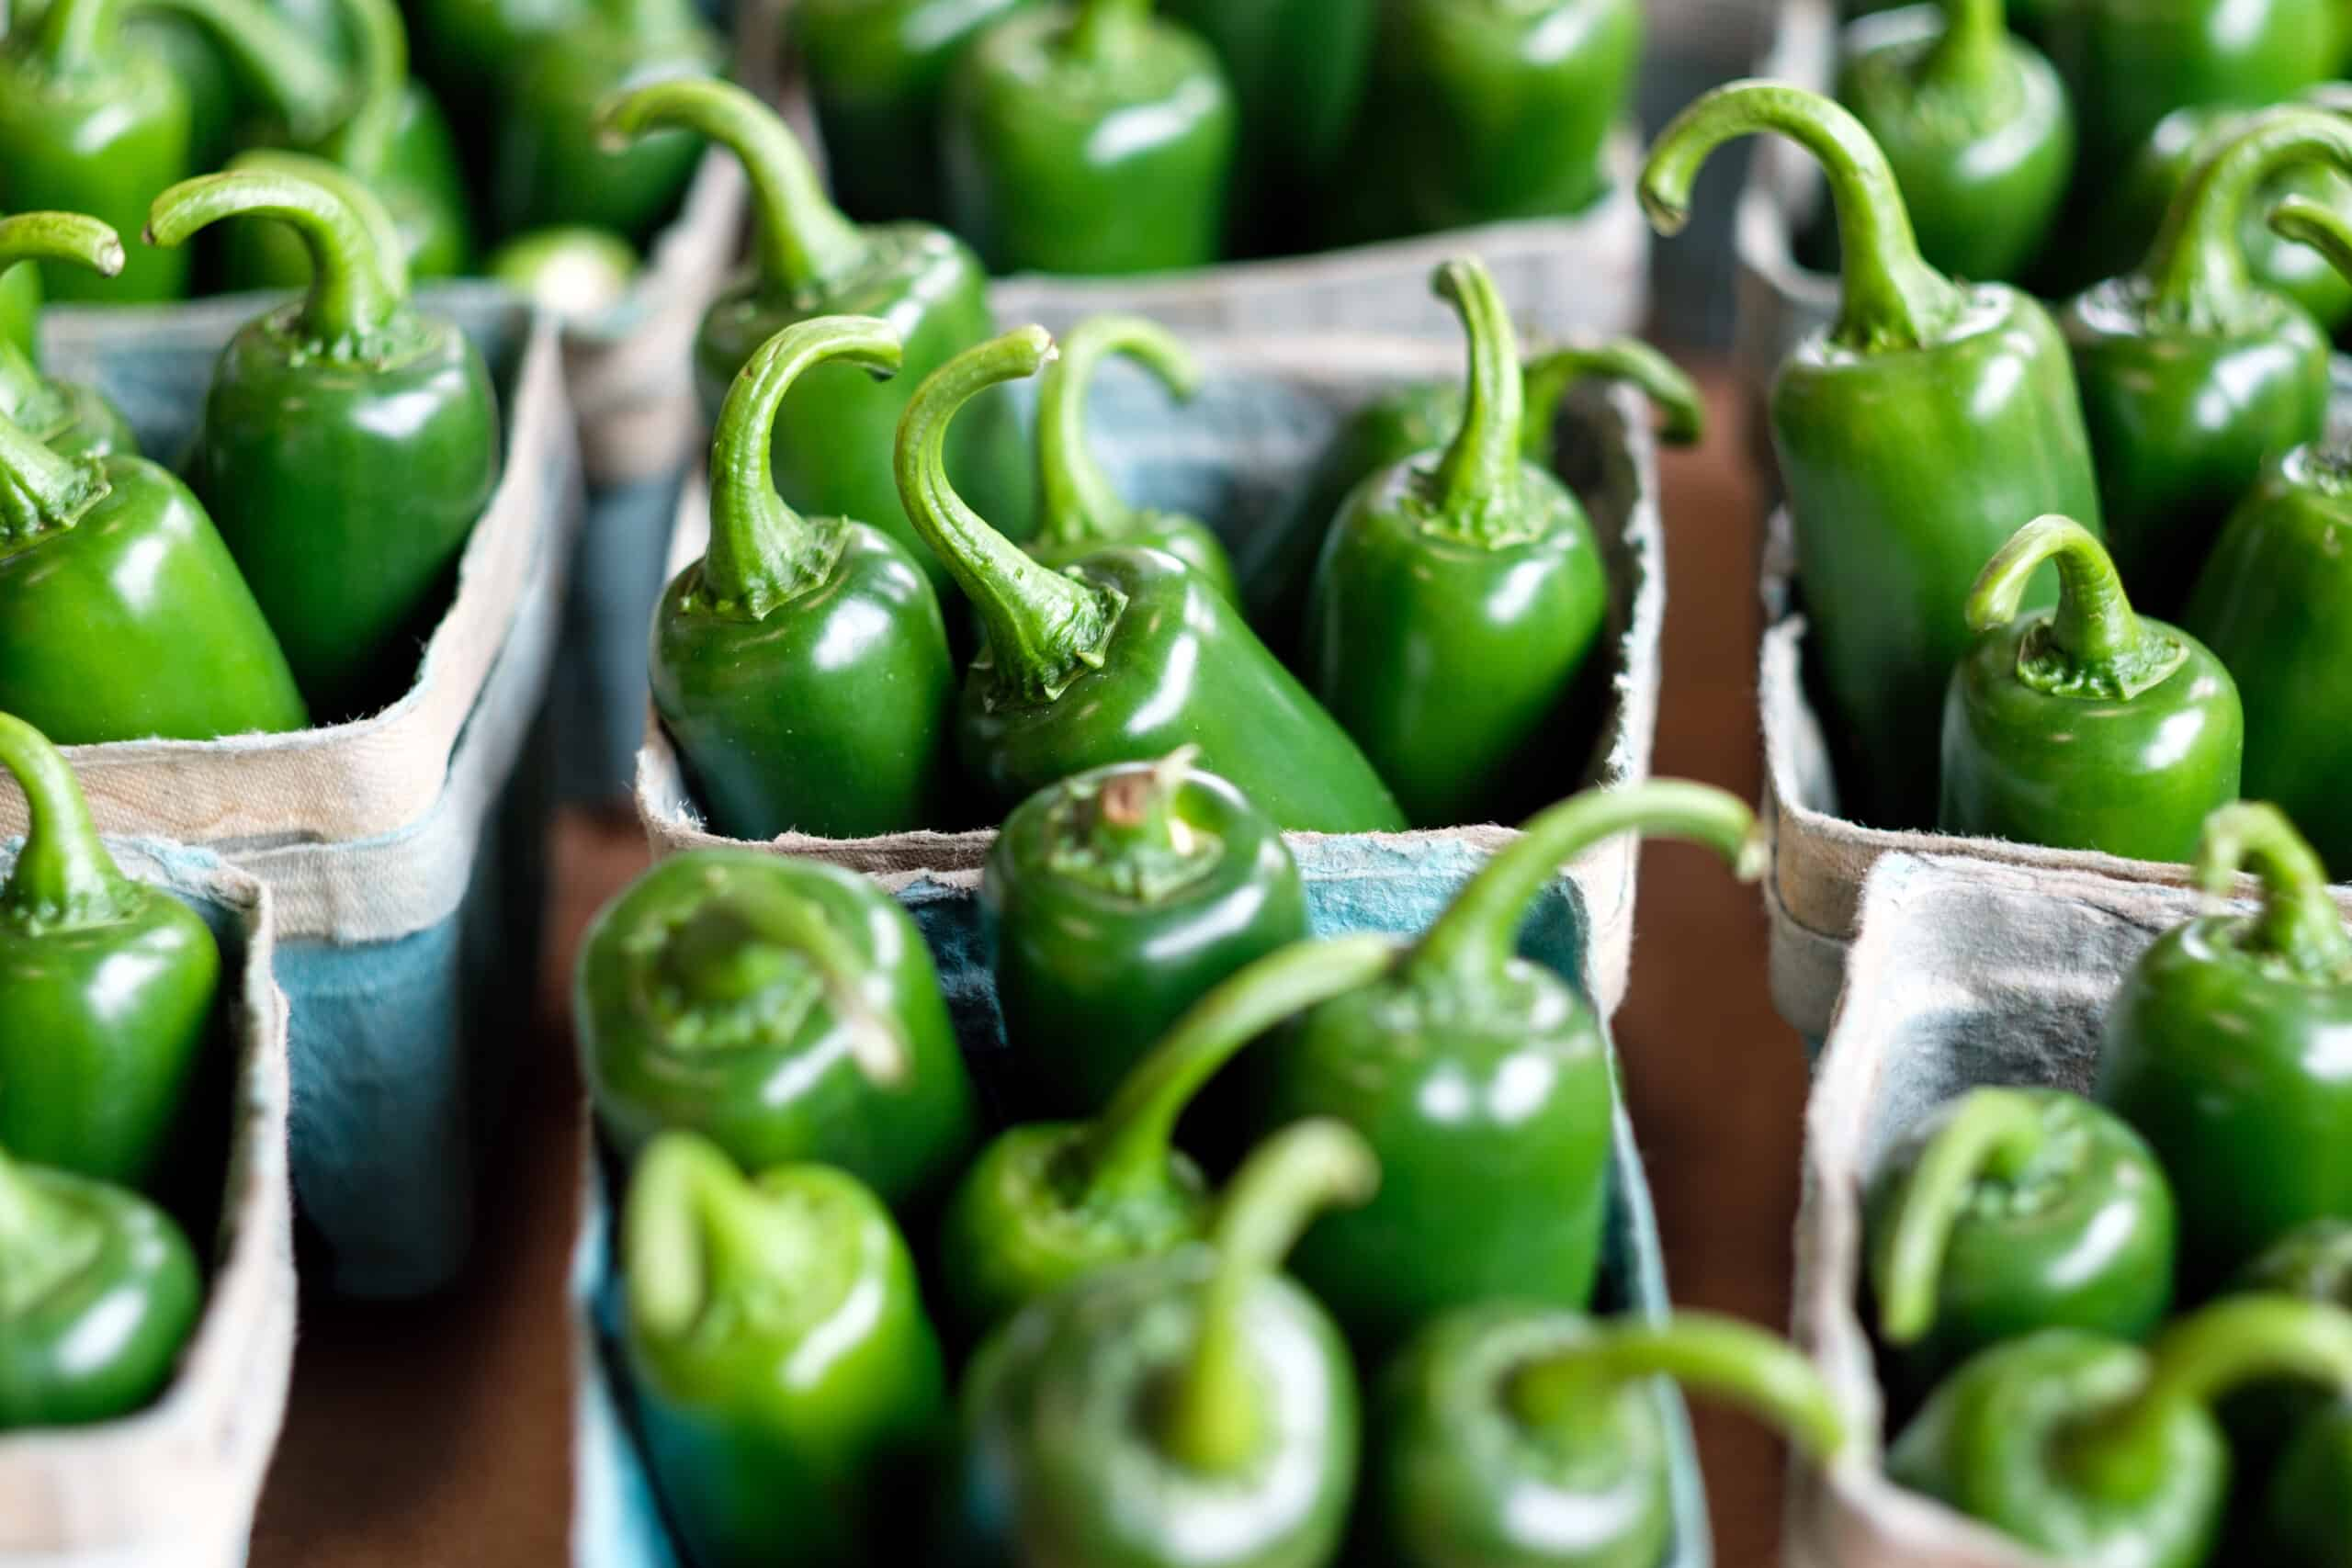 jalapeno peppers from store in baskets